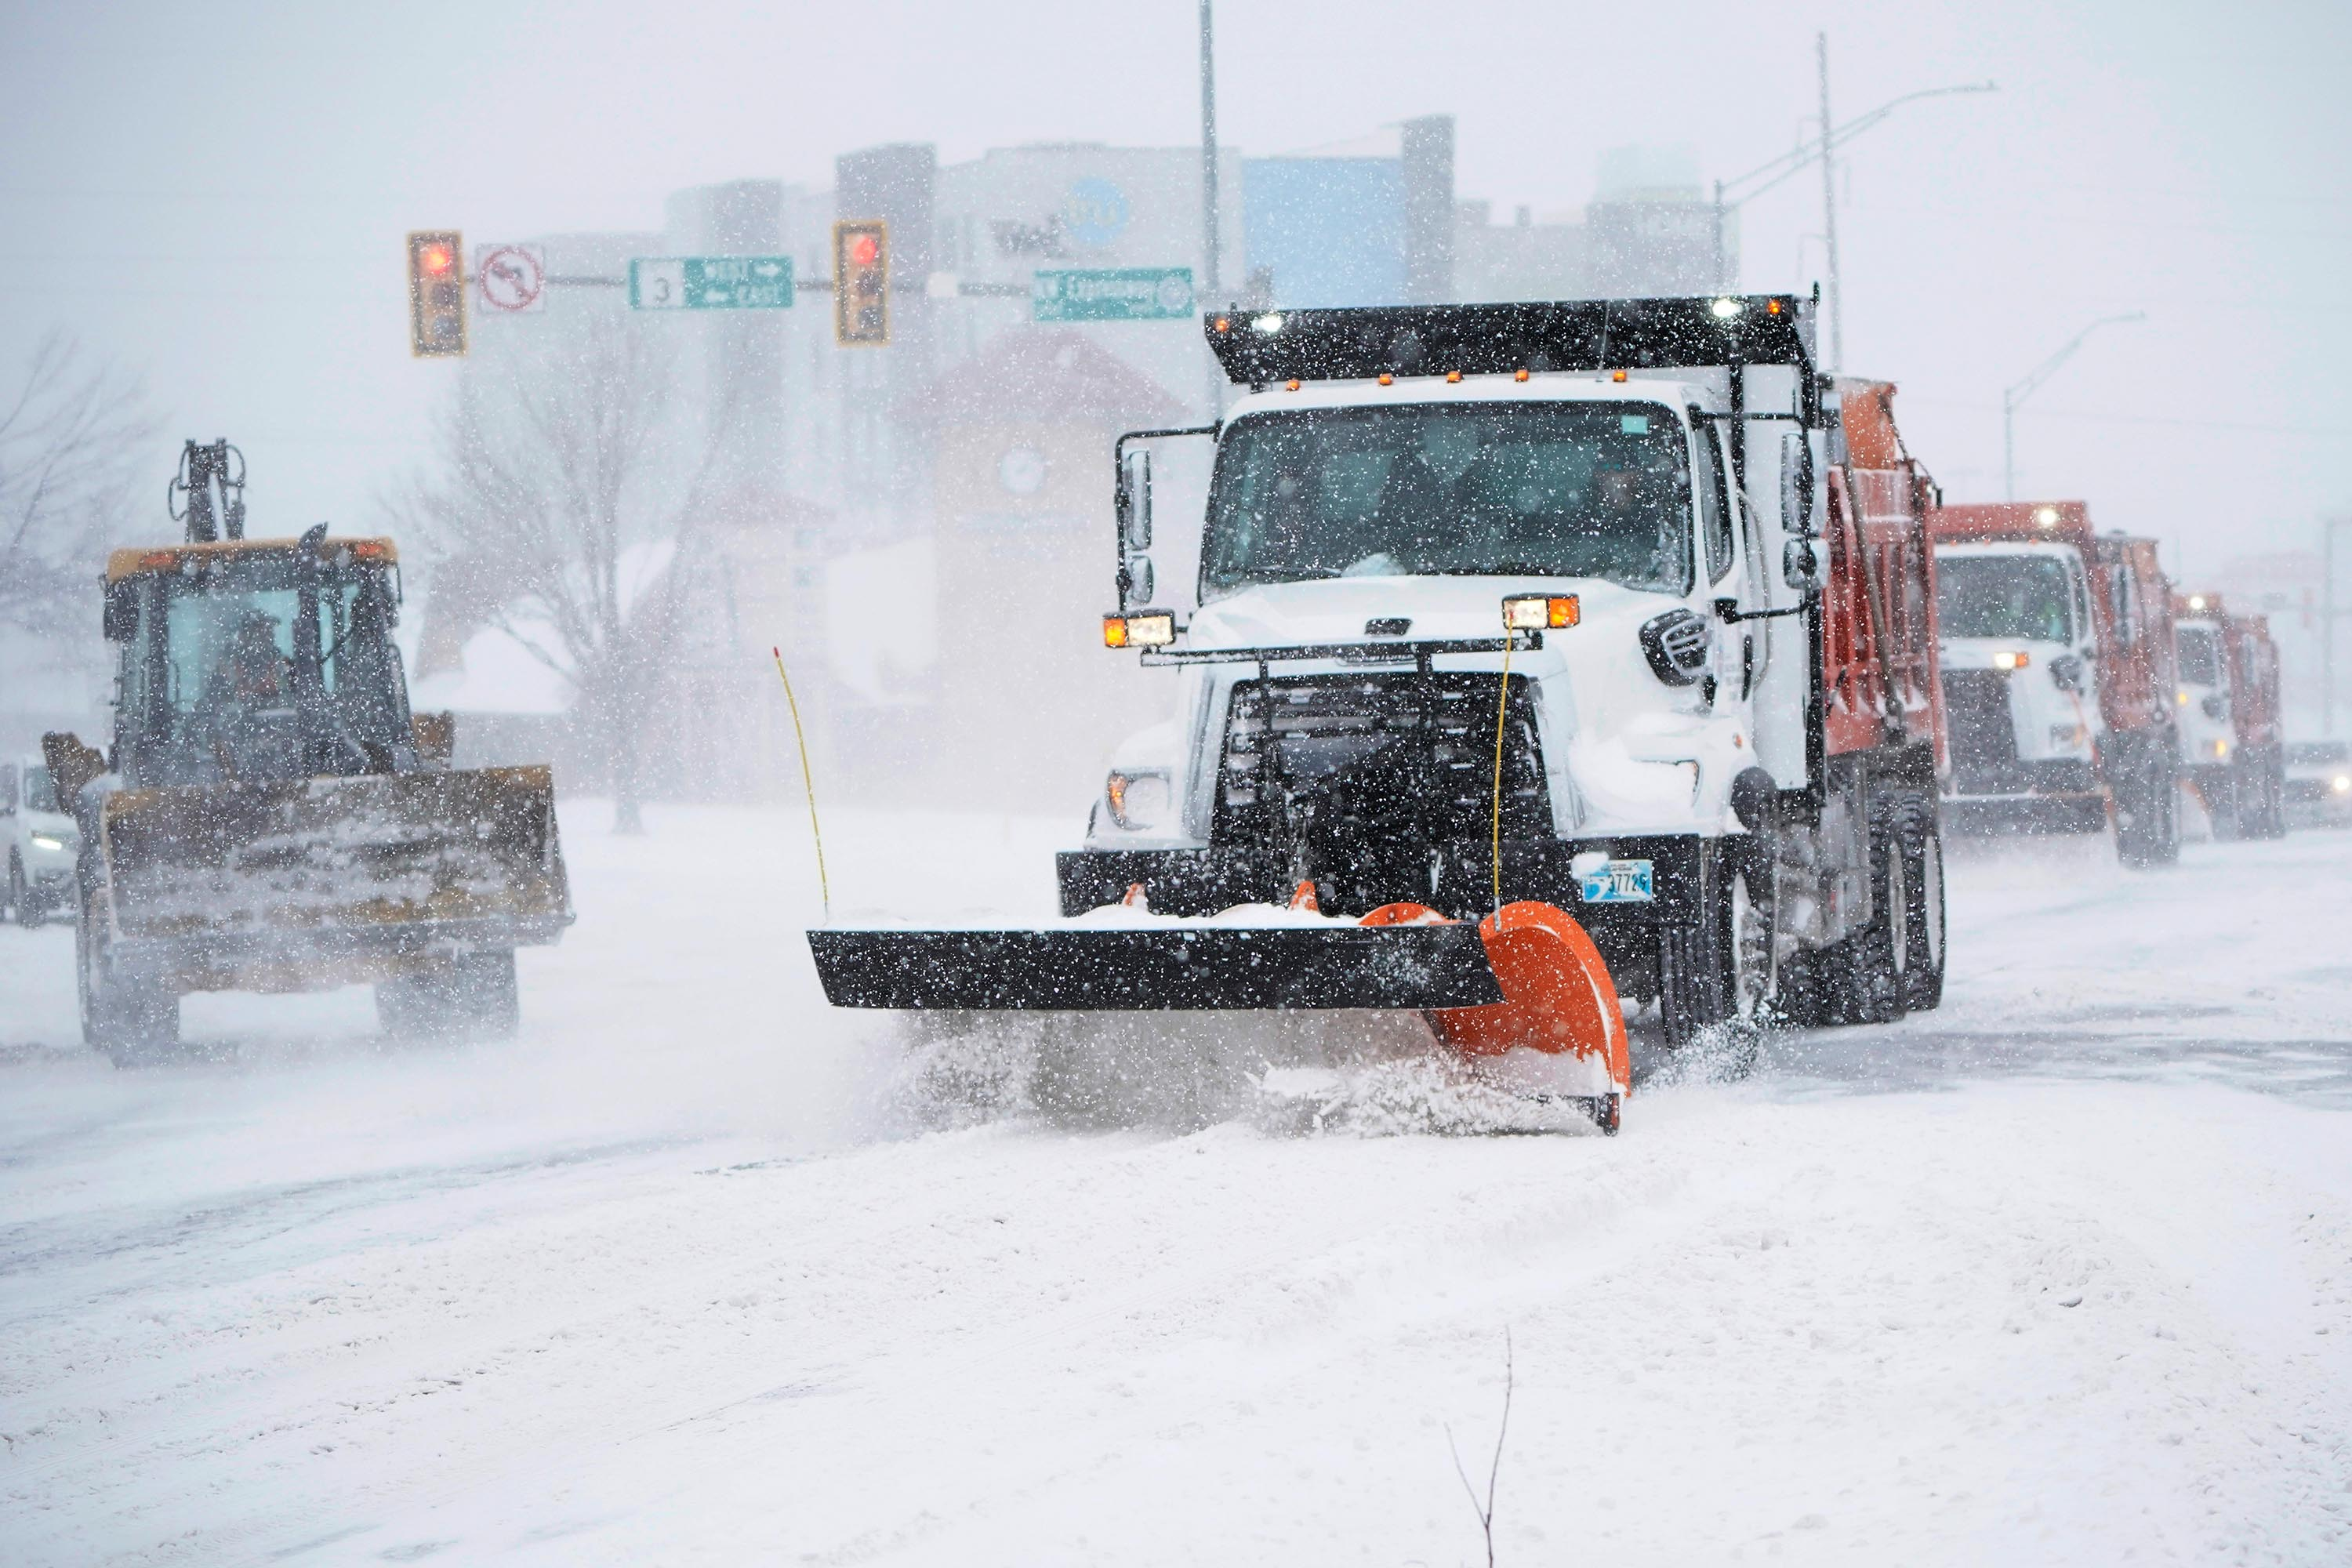 Vehicles work to clear an intersection during a winter storm Sunday, February 14, in Oklahoma City.